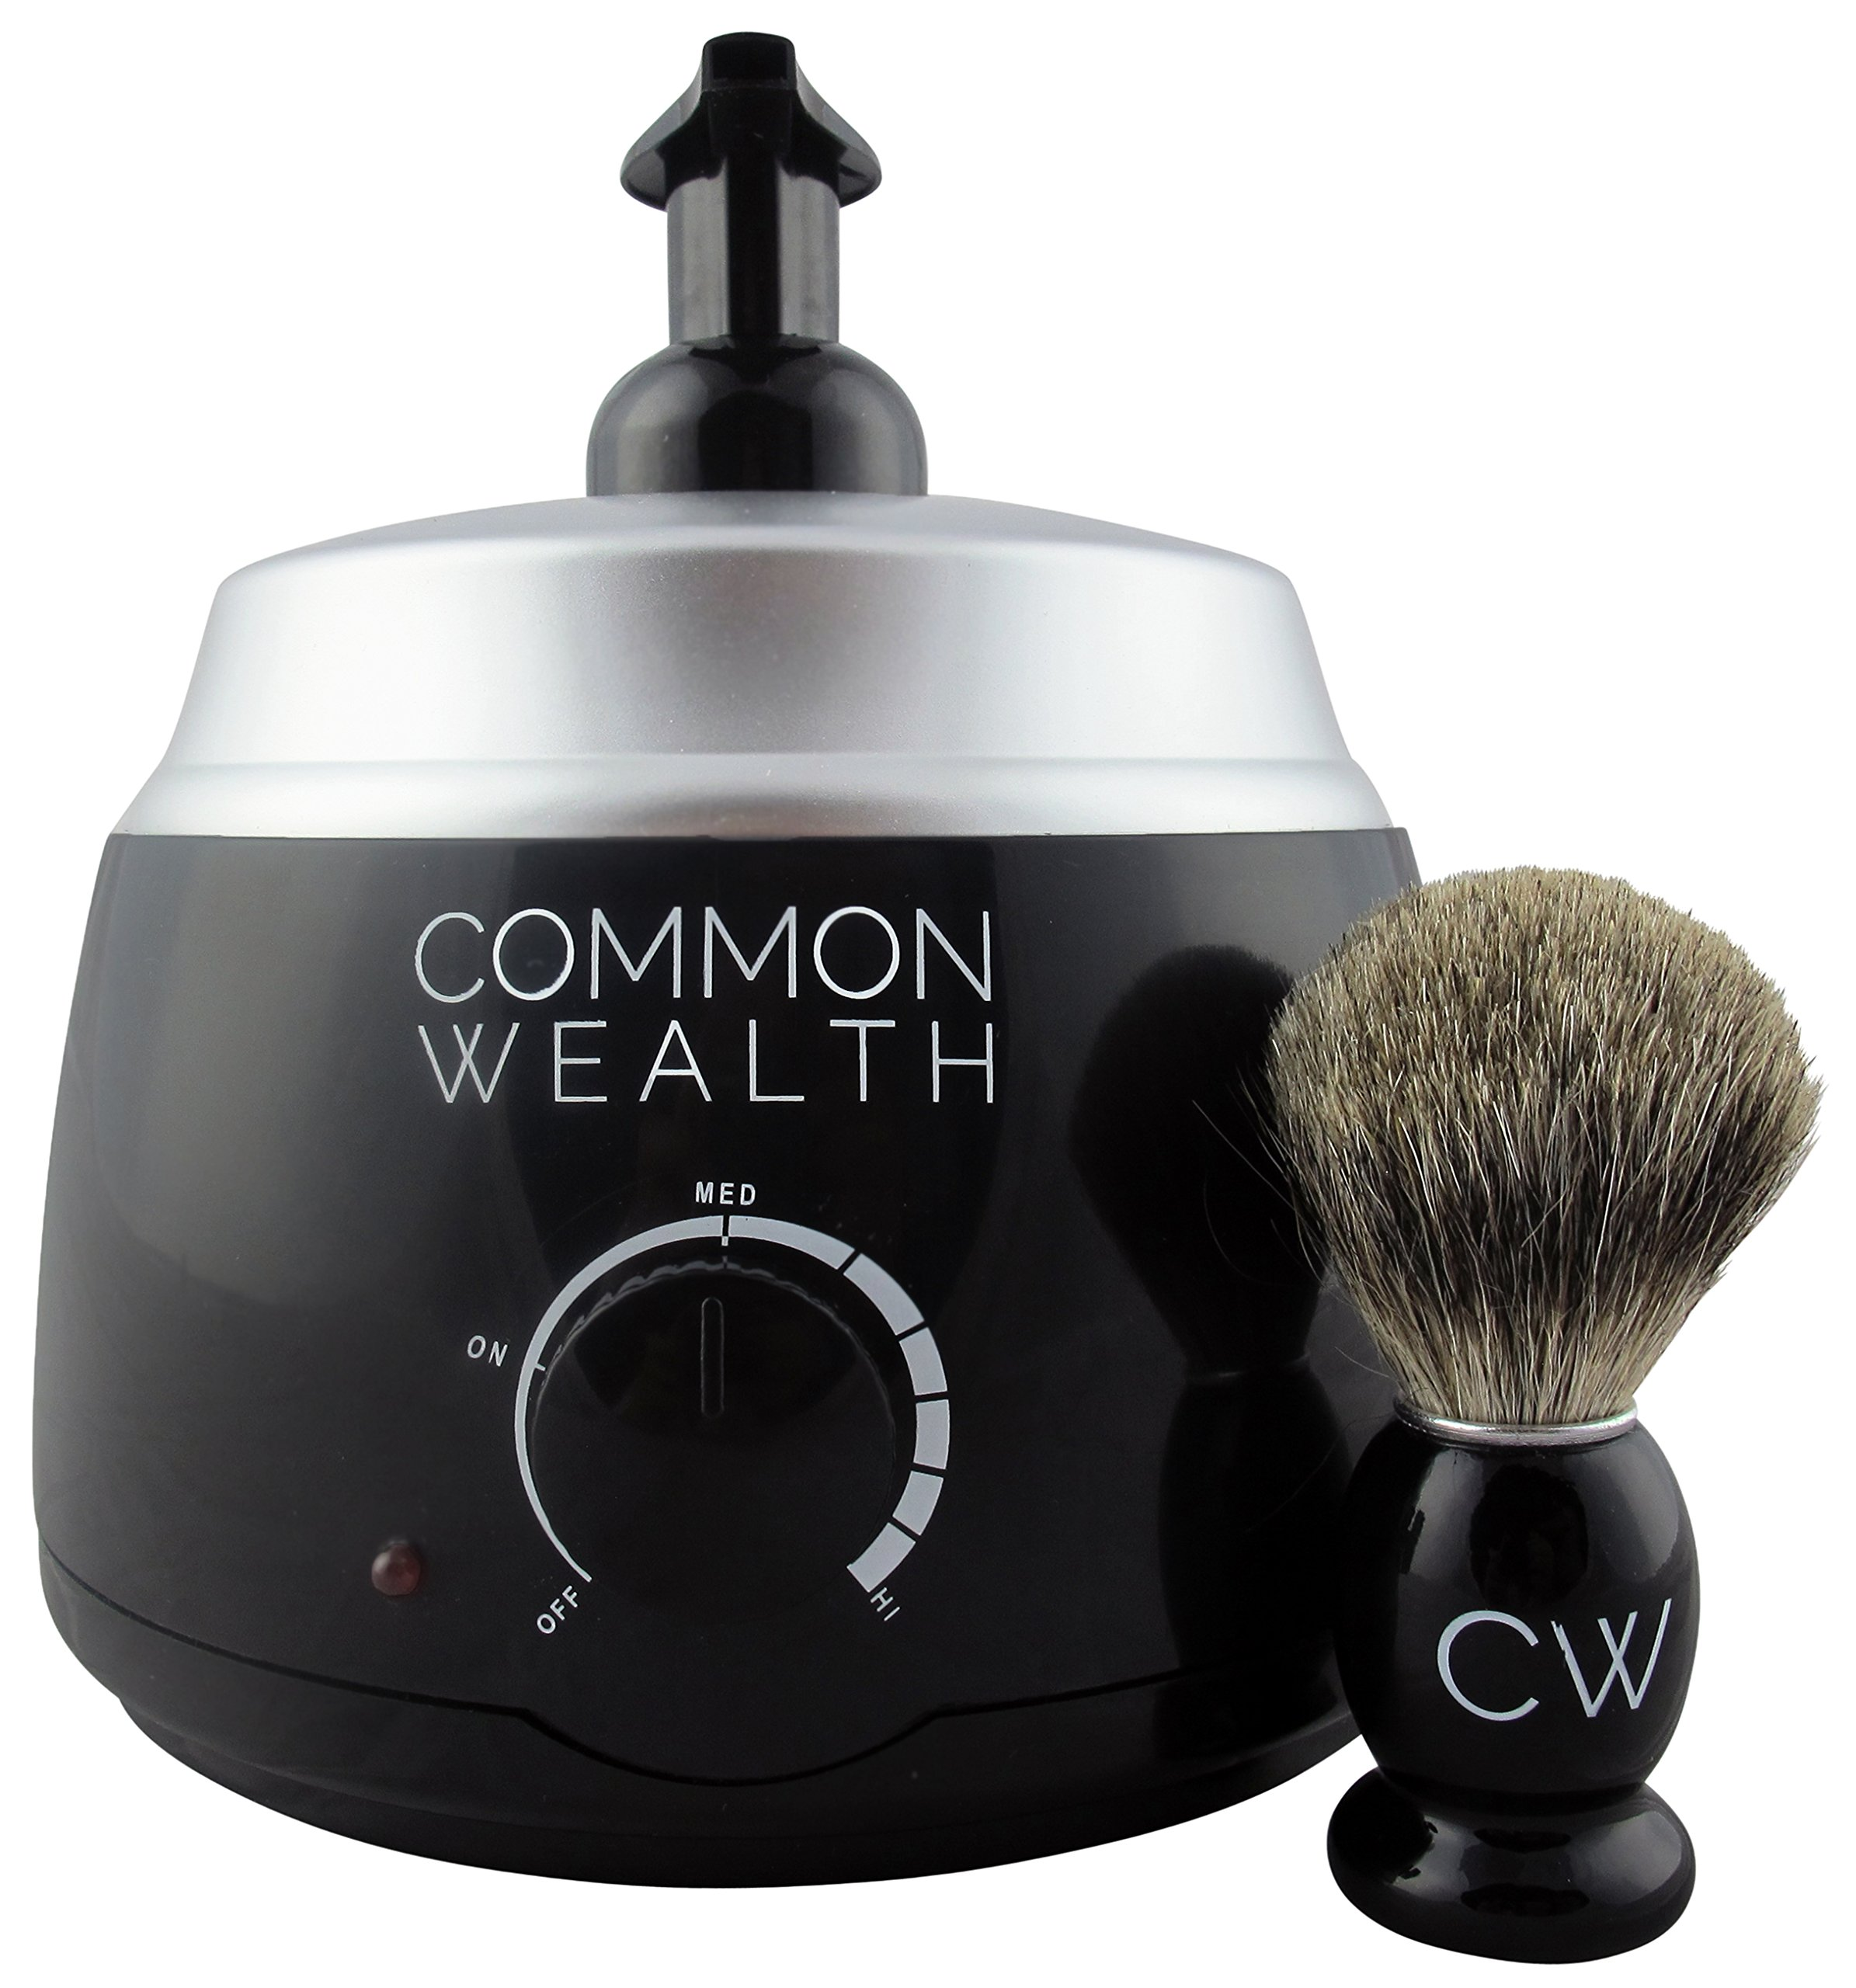 Common Wealth INTERNATIONAL 220V Professional Deluxe Hot Lather Machine Barber Latherizer King Size Black Color With Bonus 100% Badger Shaving Brush & 8oz Lather Concentrate by Commonwealth